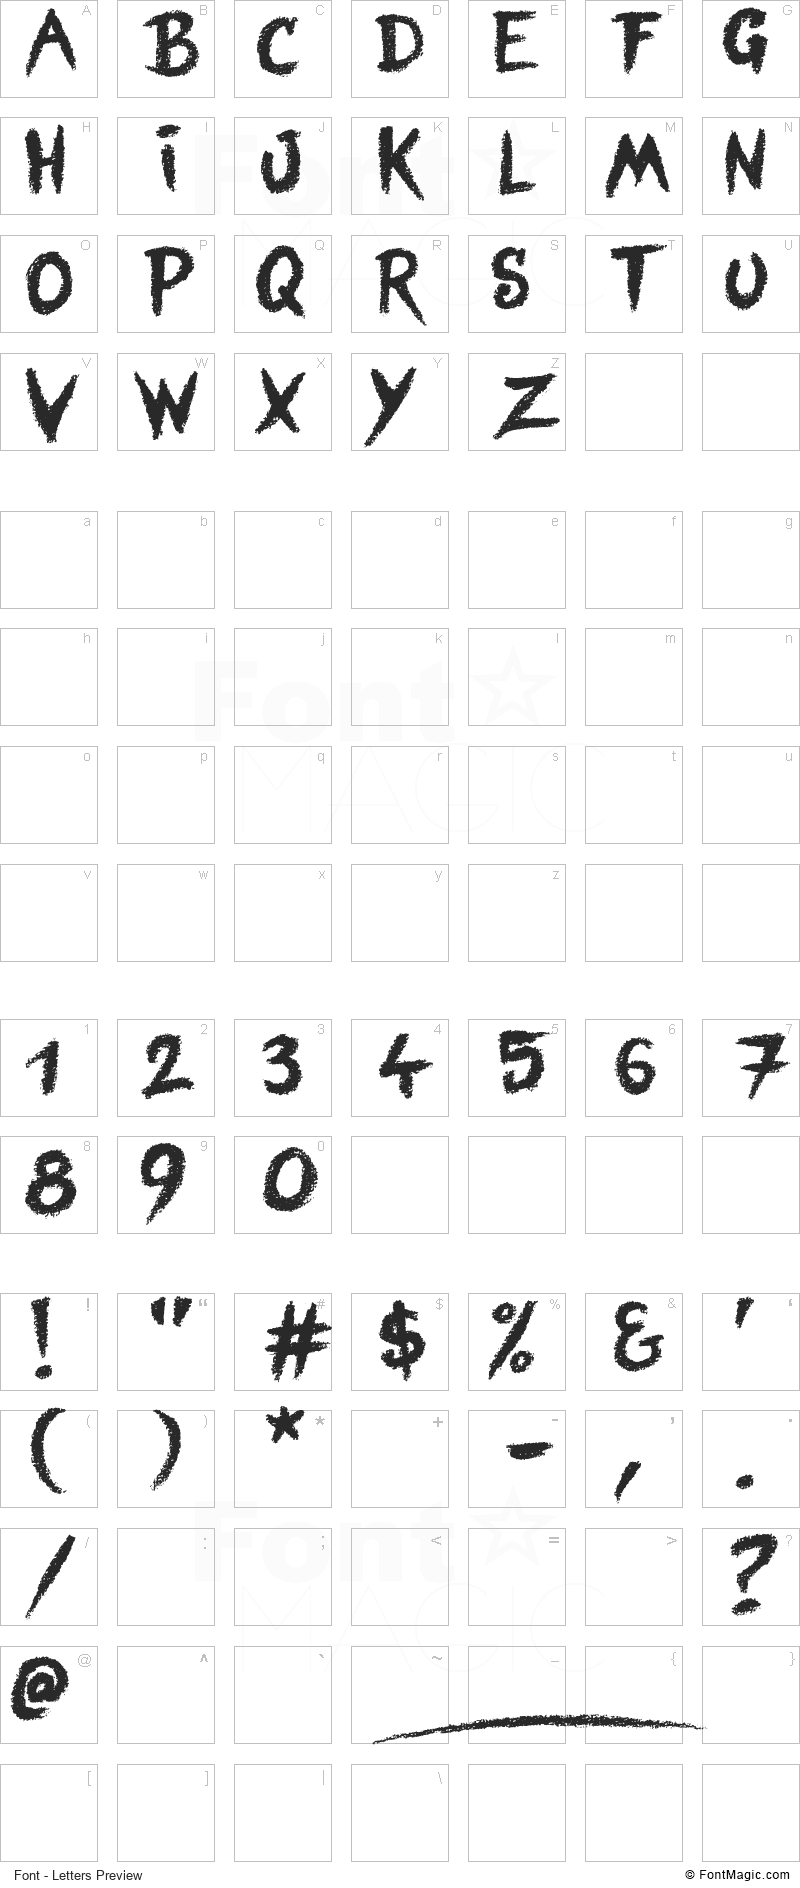 Blind Signature Font - All Latters Preview Chart